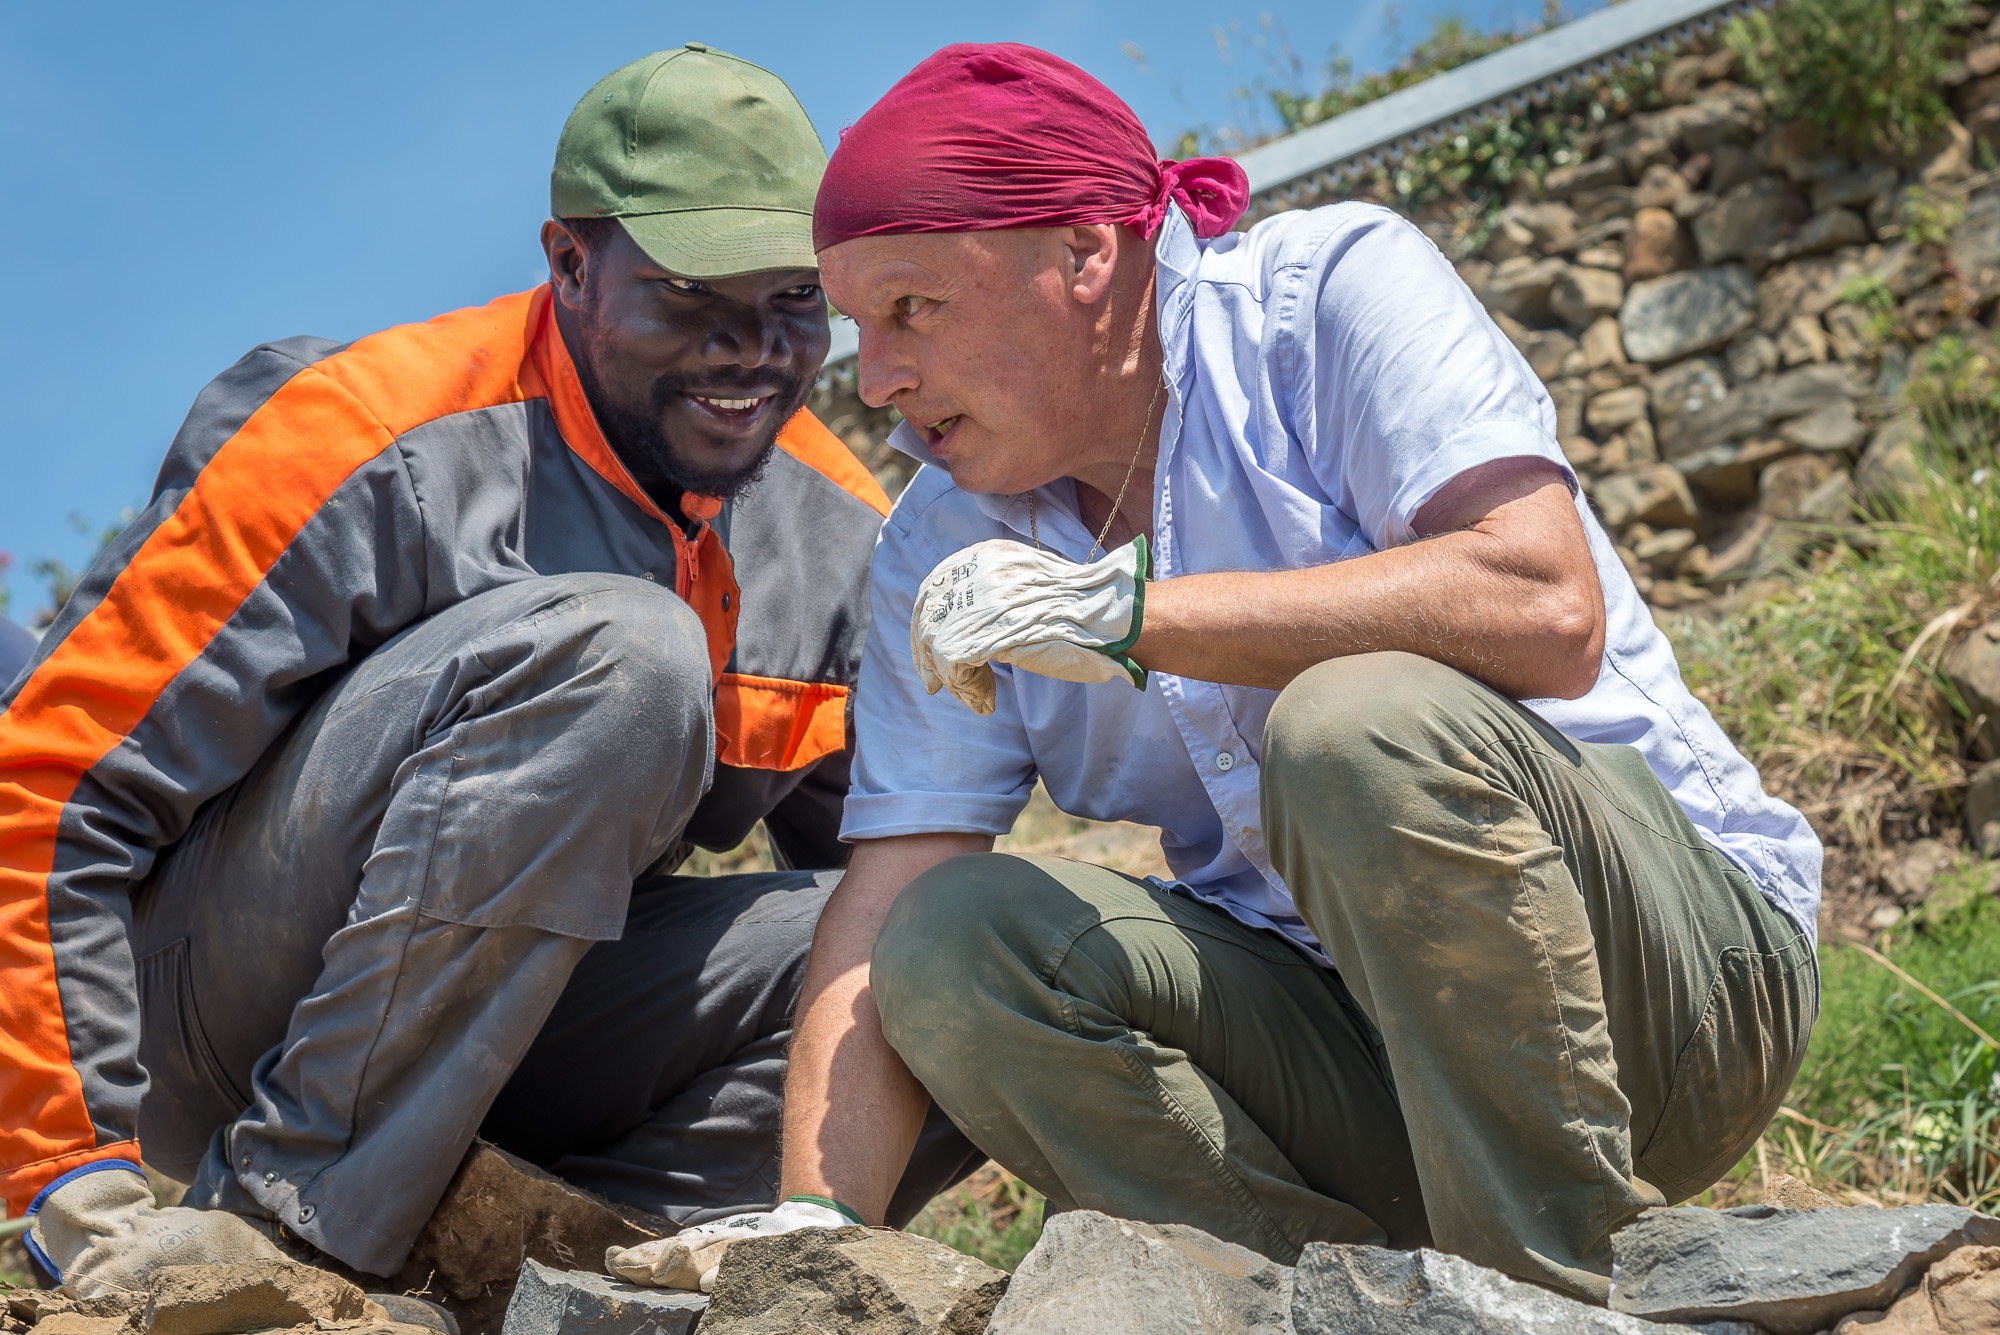 course of integration for African Refugees in the Cinque Terre